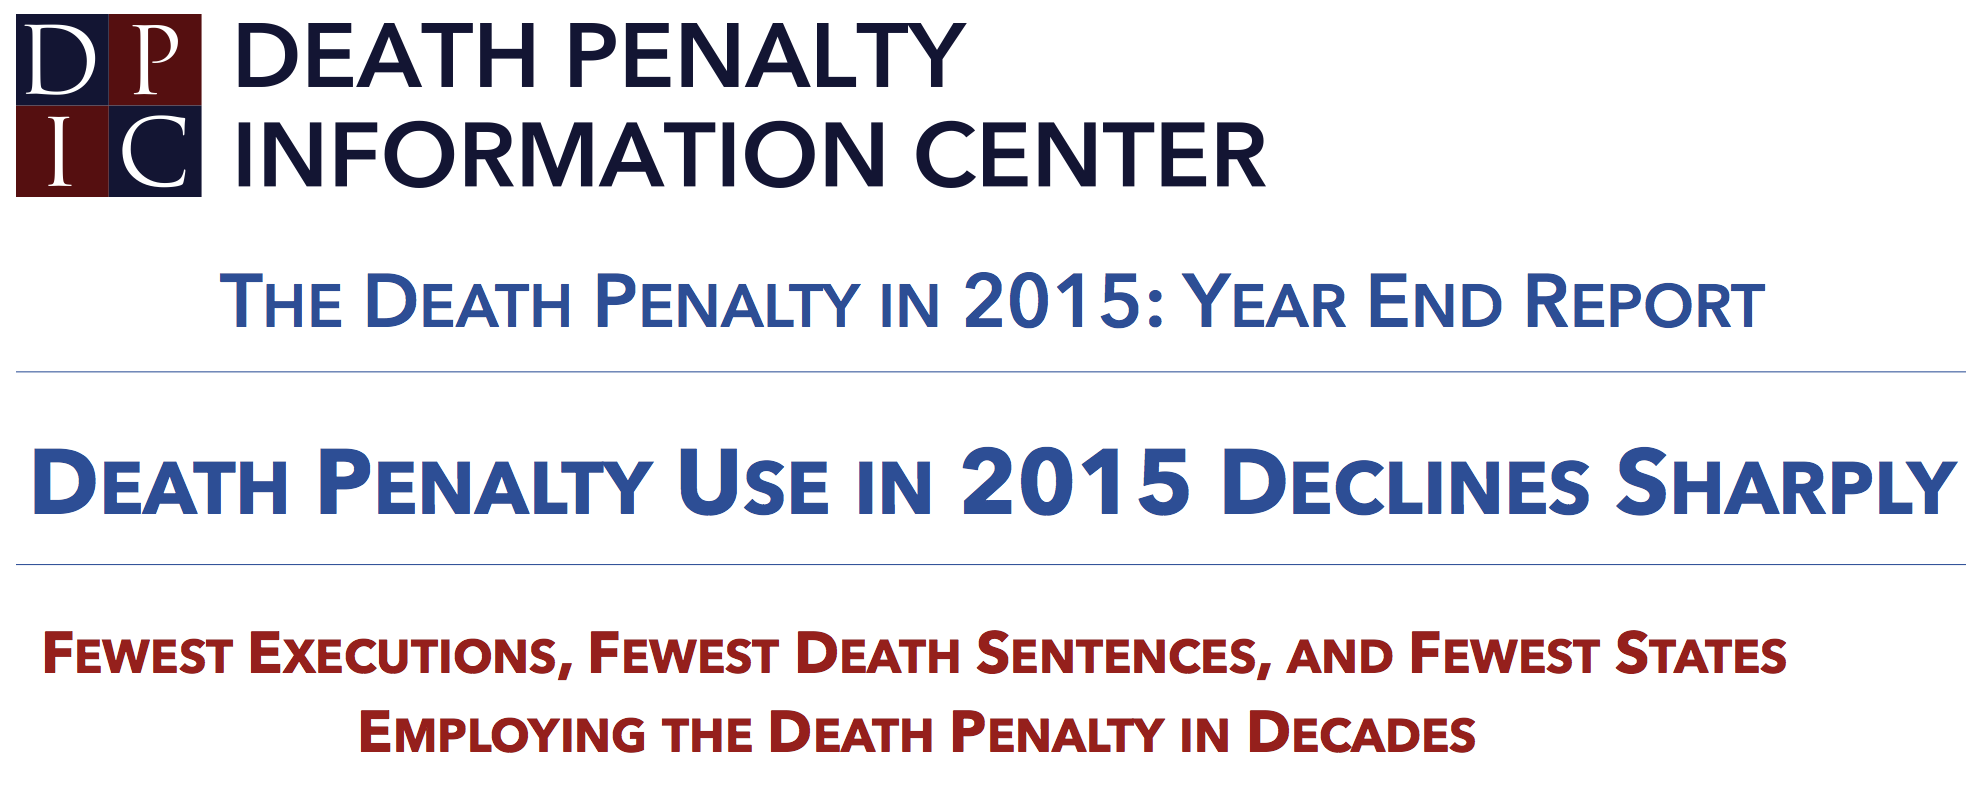 PRO DEATH PENALTY RESEARCH PAPERS : Best Essay Writing Service